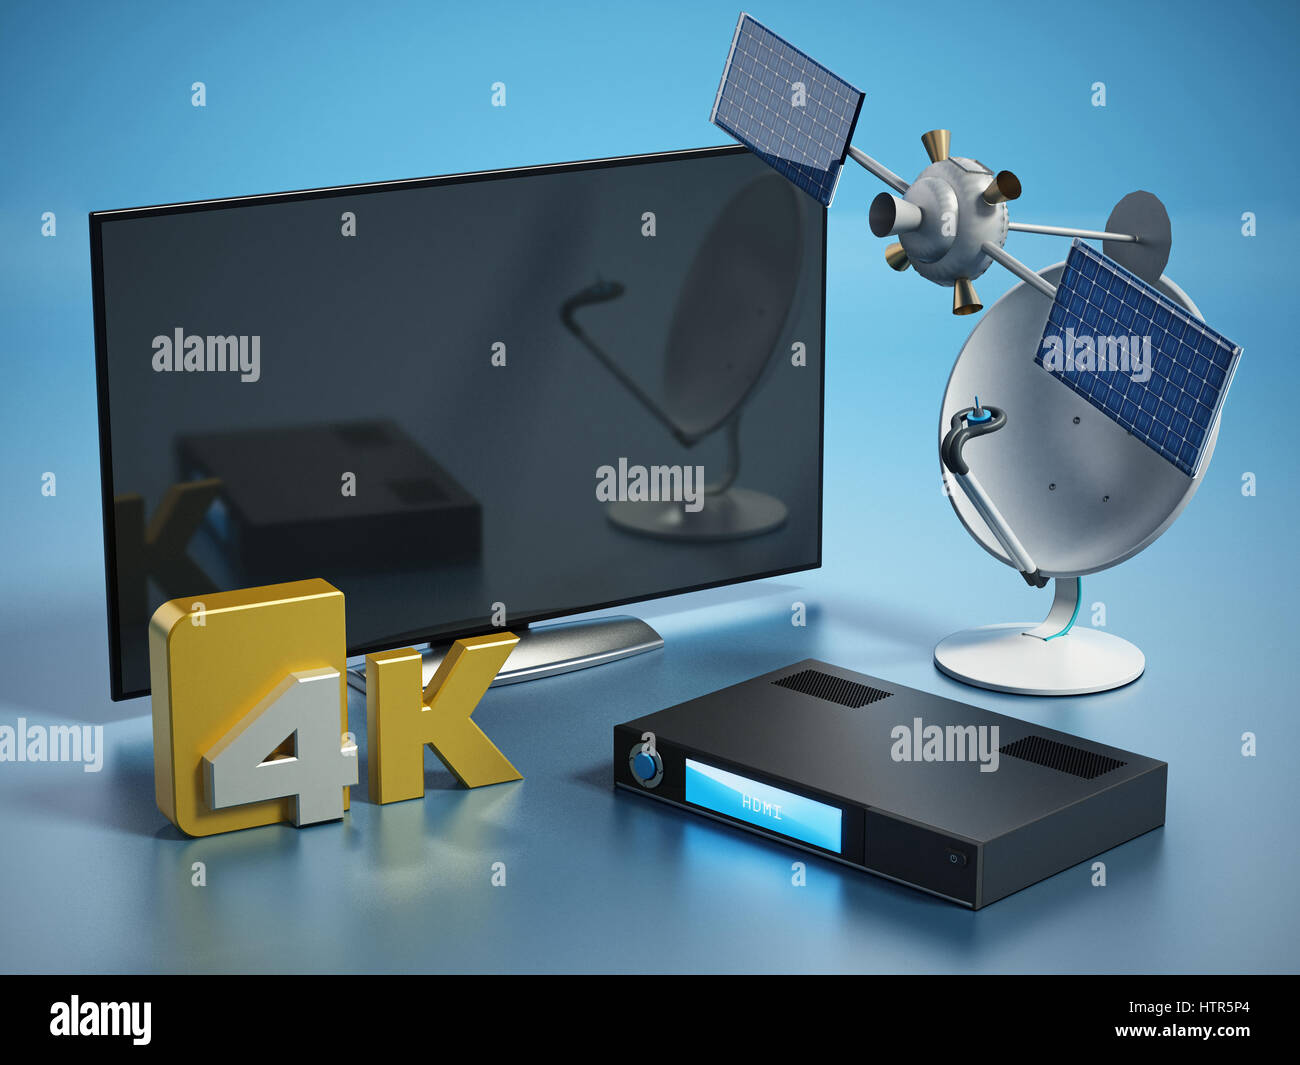 Satellite, dish, 4K ultra HD receiver and TV isolated on white background. 3D illustration. - Stock Image